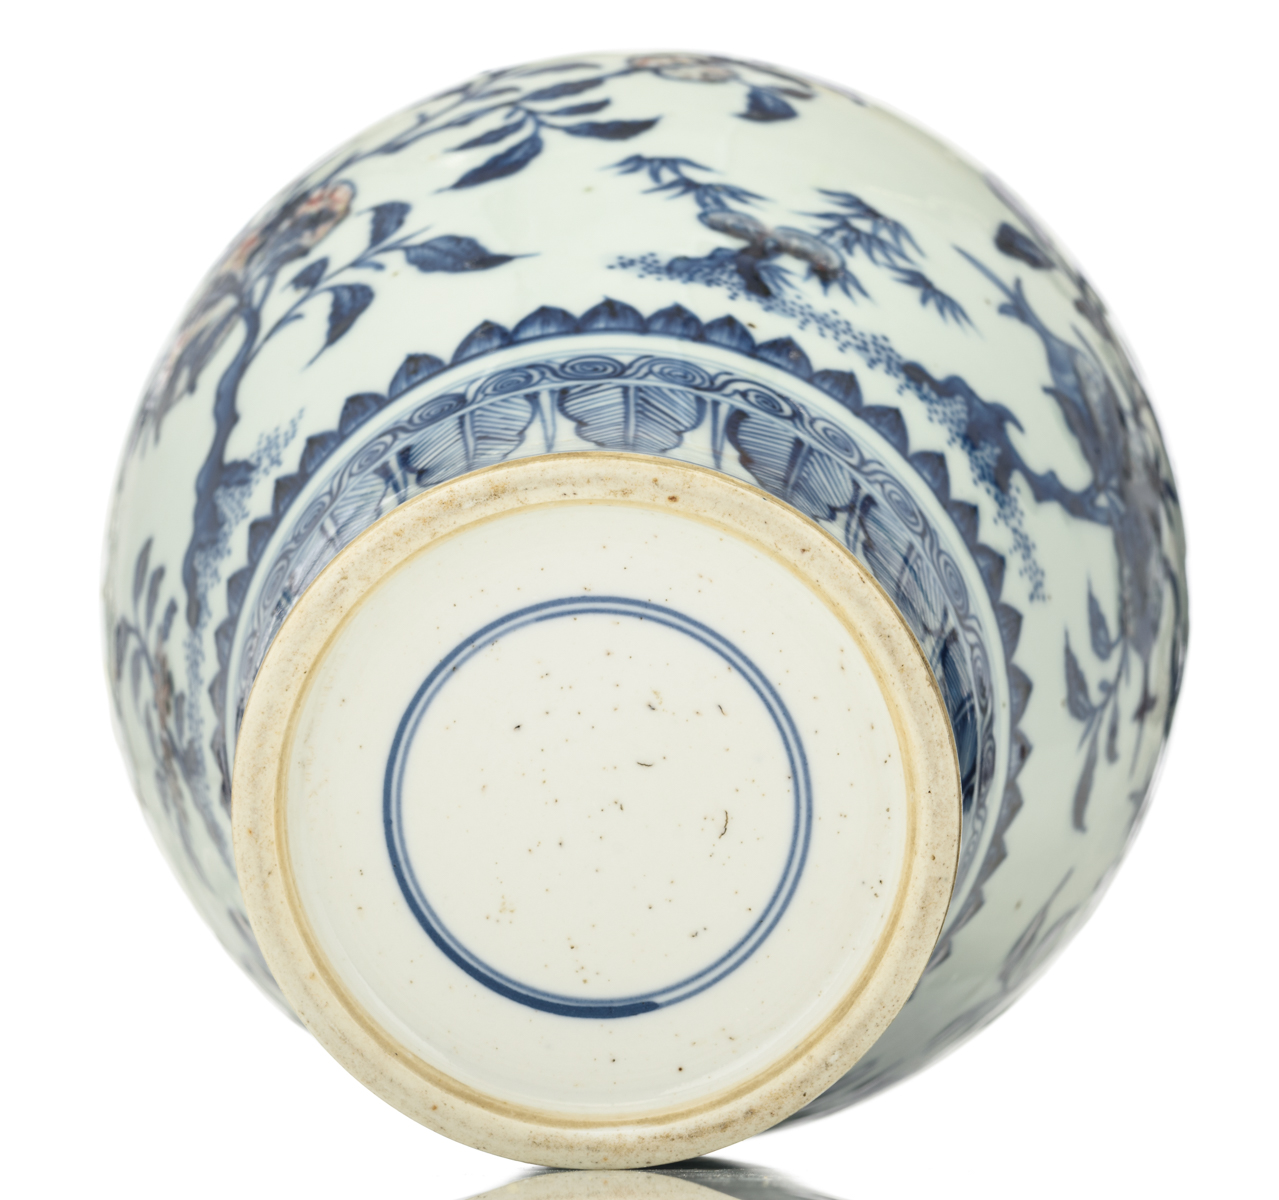 Lot 40 - A Chinese copper red and cobalt blue underglaze meiping vase, decorated with peaches, Buddha's hands